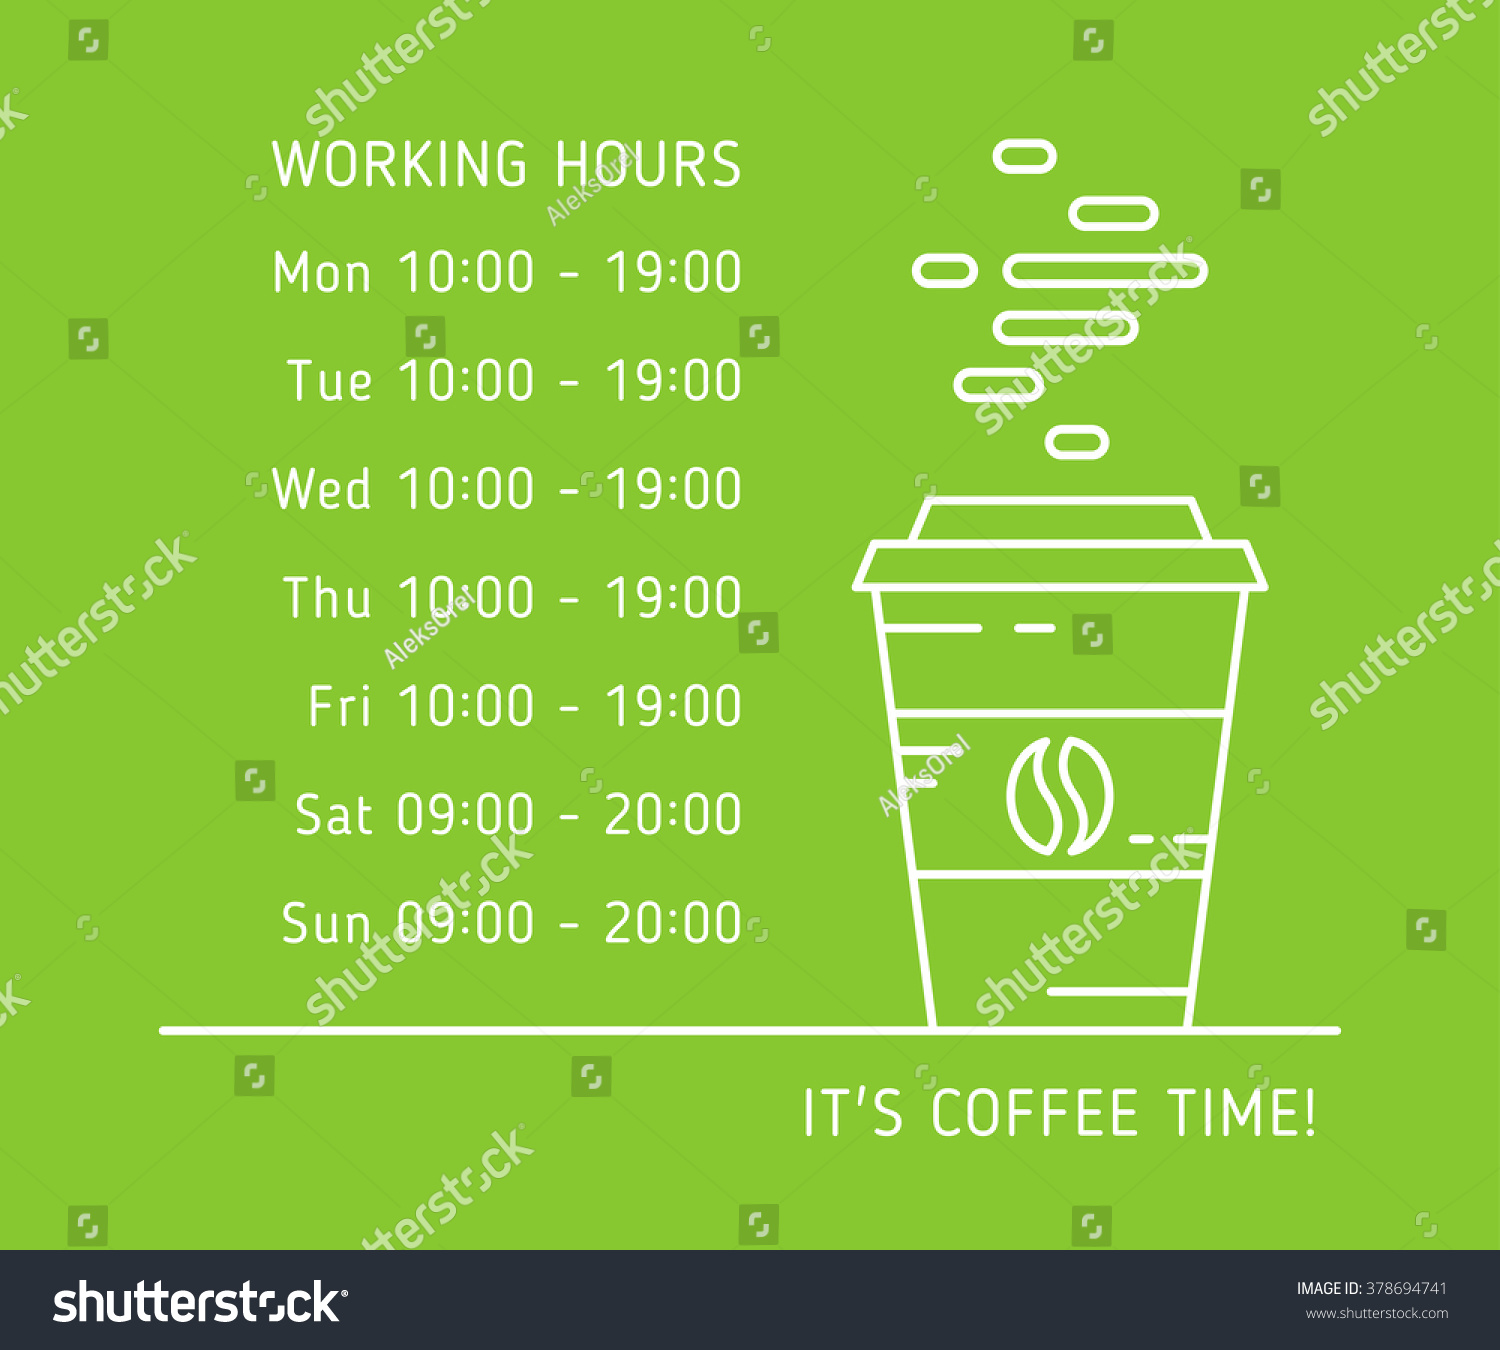 Coffee Time Working Hours Linear Vector Stock Vector 378694741 ...